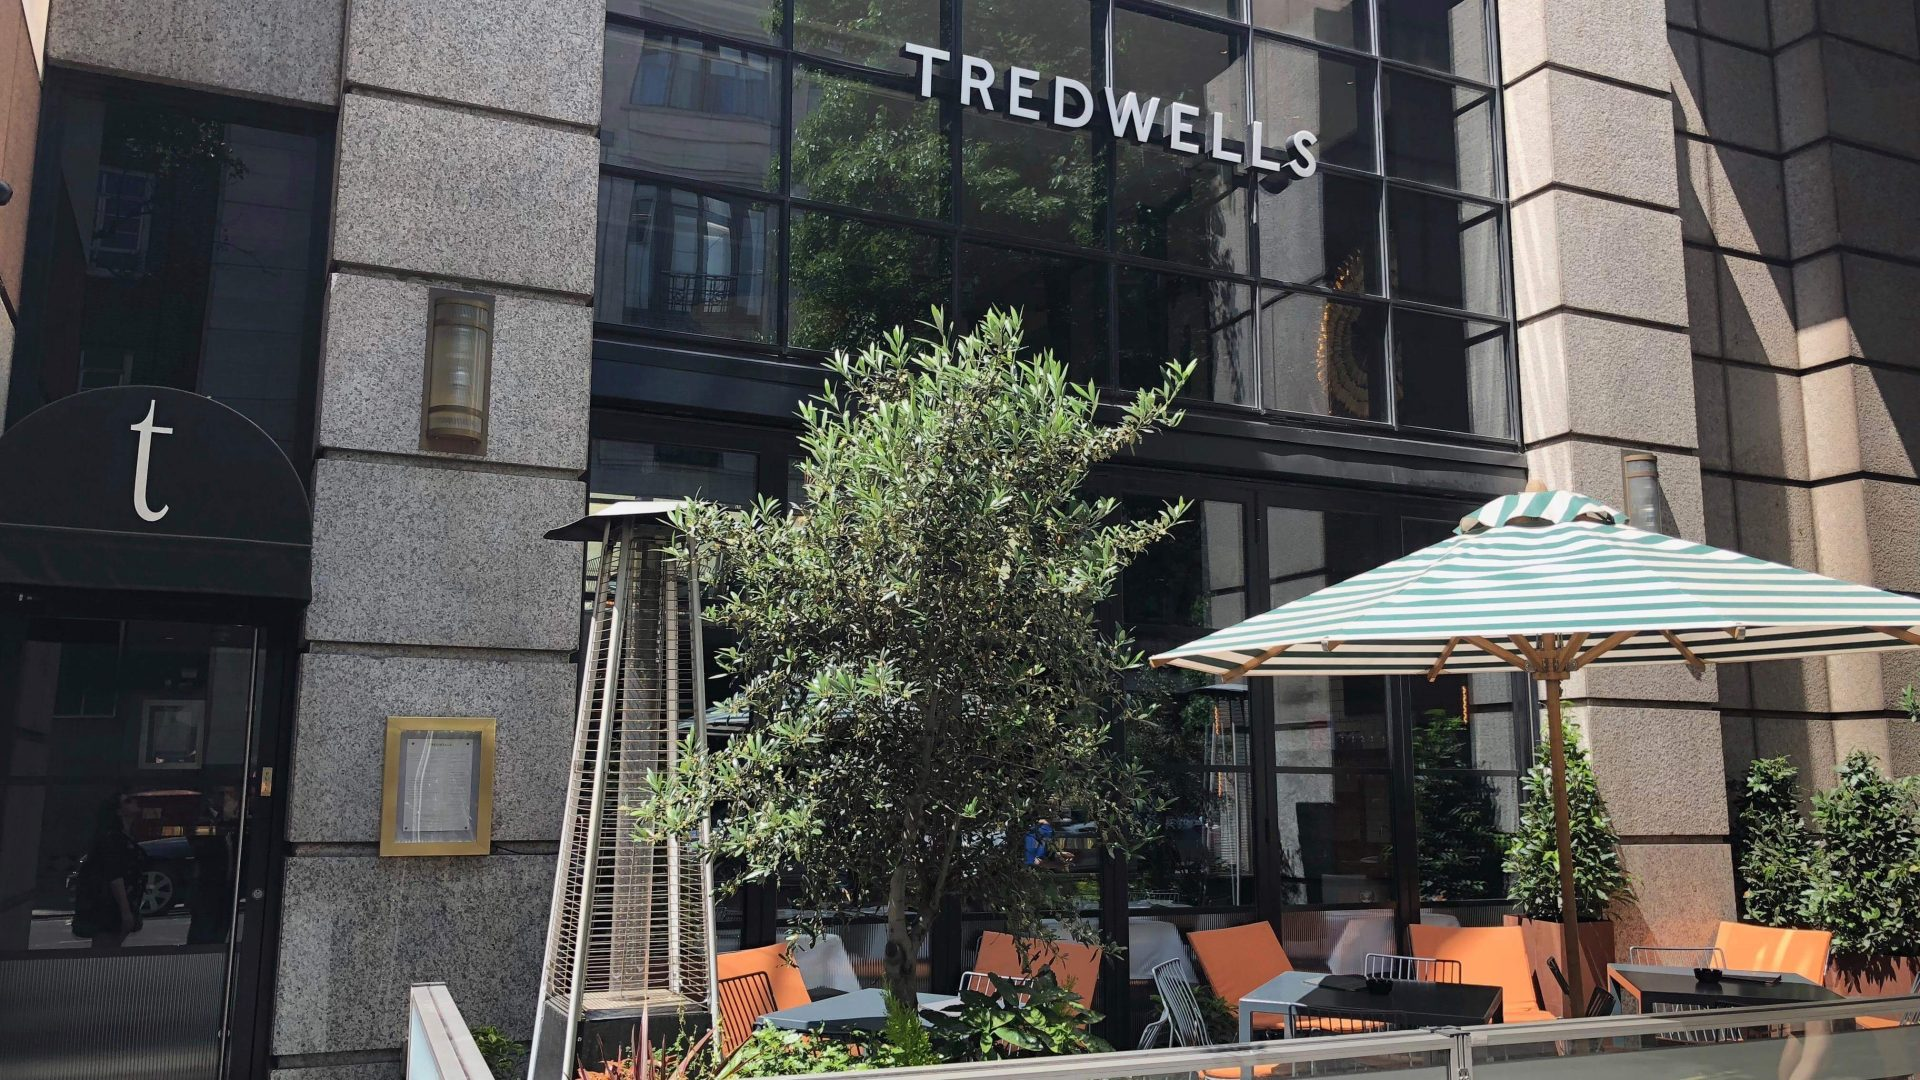 Set Lunching at Tredwell's